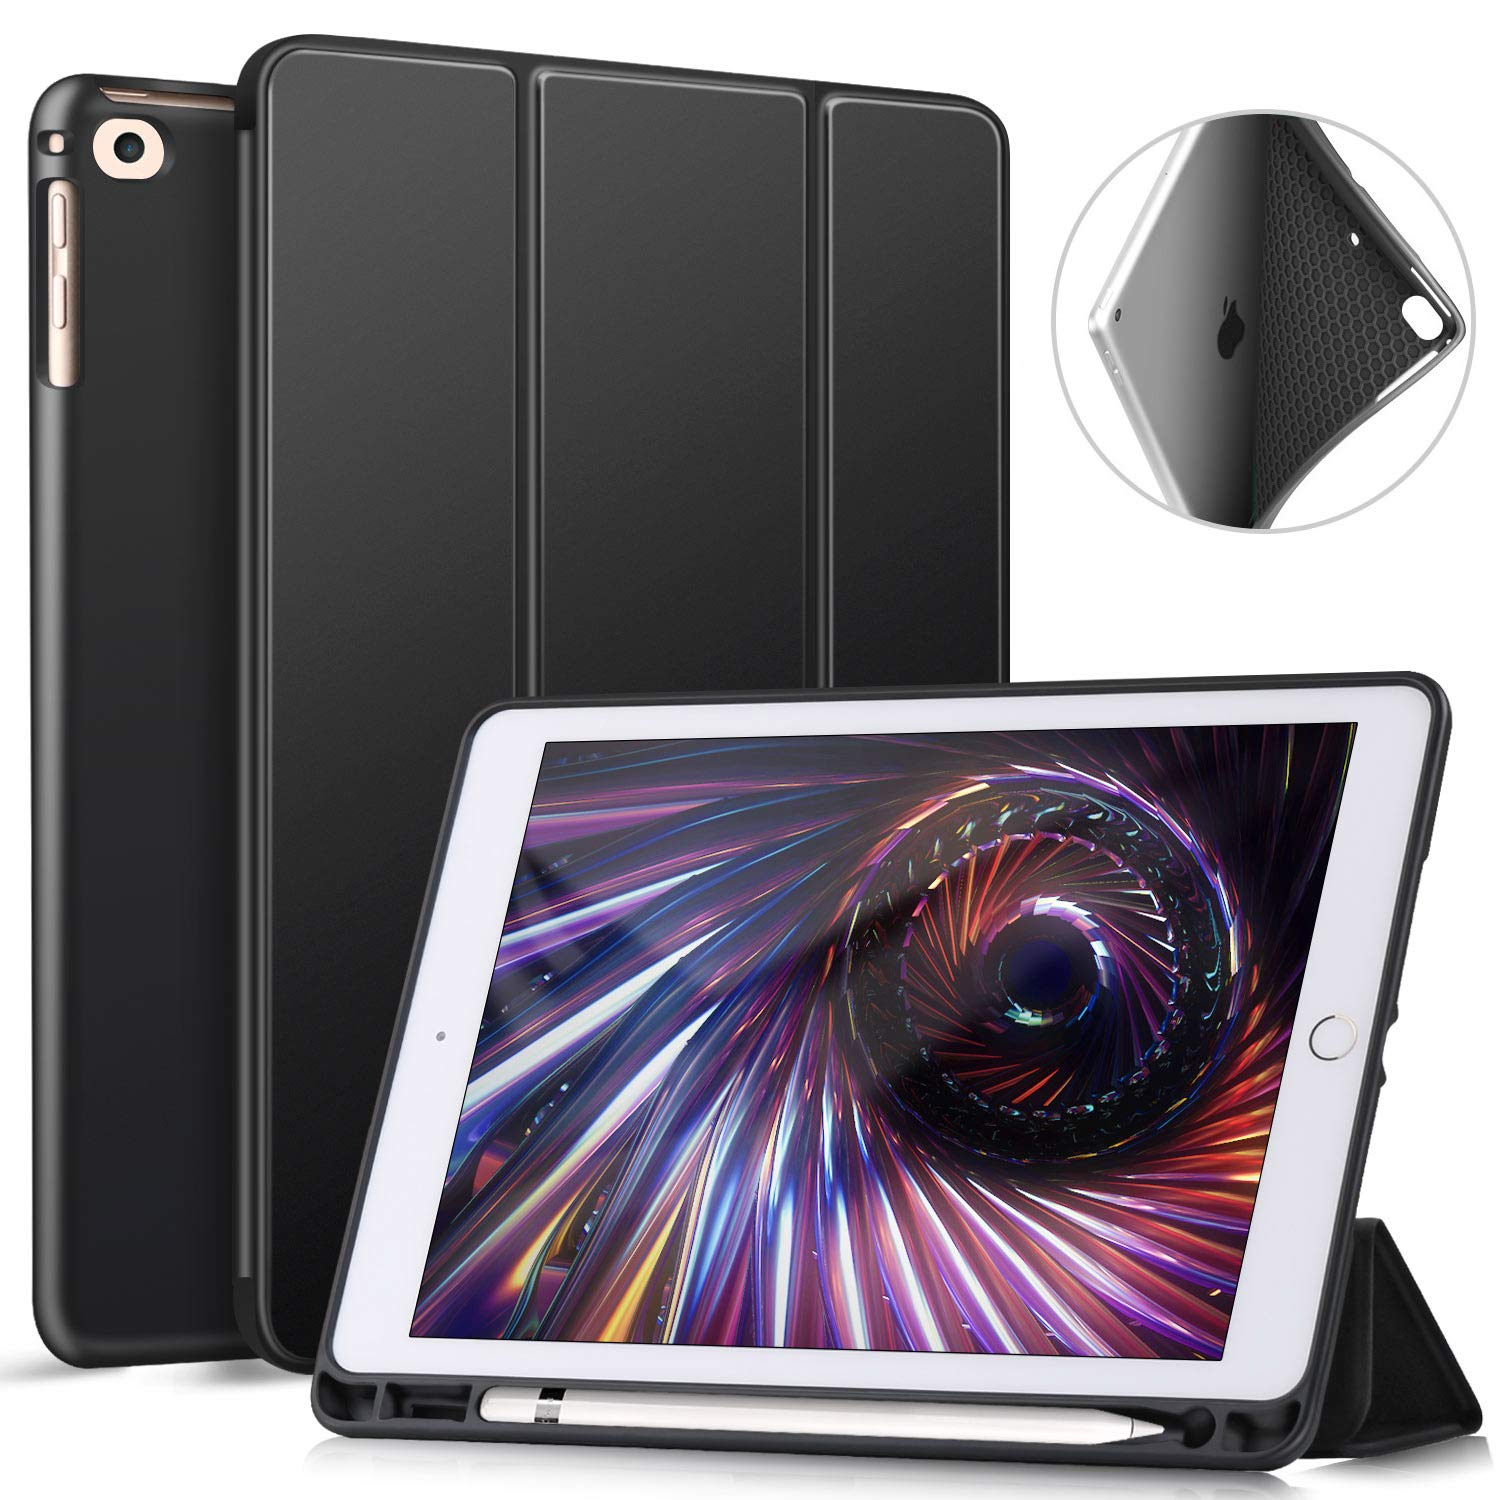 ZtotopCase iPad 9.7 Inch 2018/2017 Case with Pencil Holder - Lightweight Soft TPU Back Cover and Trifold Stand with Auto Sleep/Wake, Protective for iPad 6th/5th Generation, Black